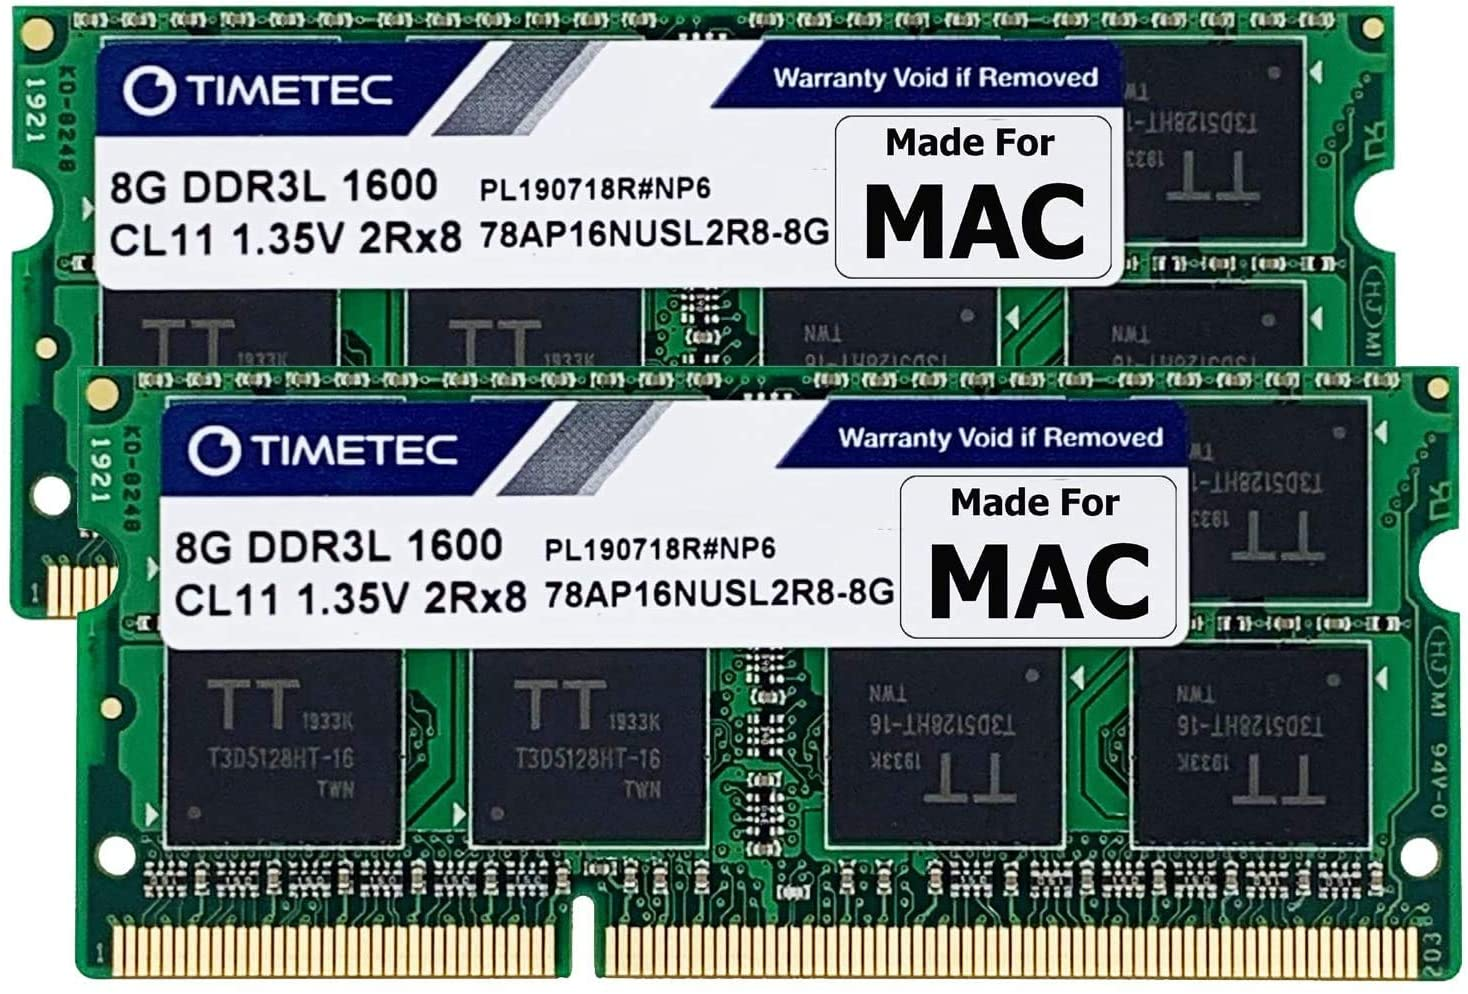 Timetec Hynix IC Apple 16GB Kit (2x8GB) DDR3 1600MHz PC3-12800 SODIMM Memory Upgrade For MacBook Pro, iMac, Mac mini/ Server